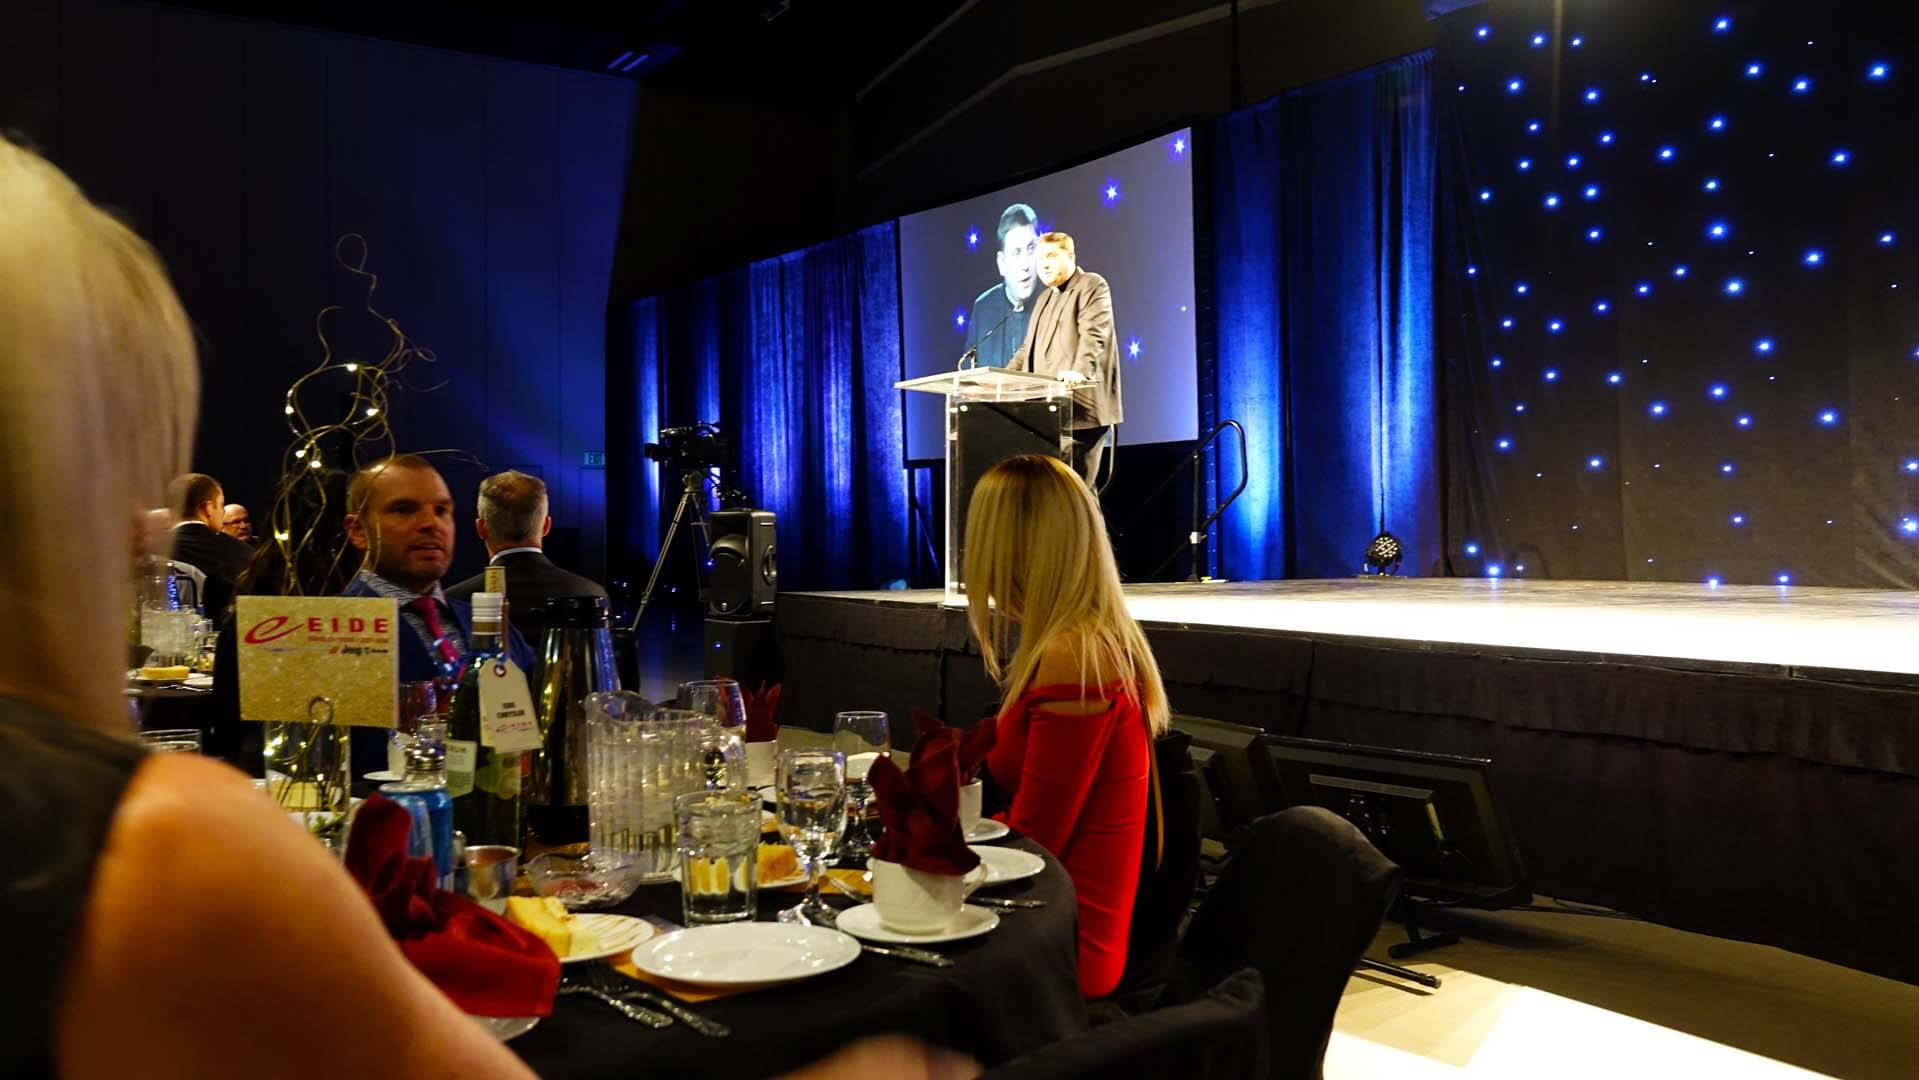 Eide Chrysler and Eide Ford sponsored the Bismarck-Mandan Chamber Annual Dinner